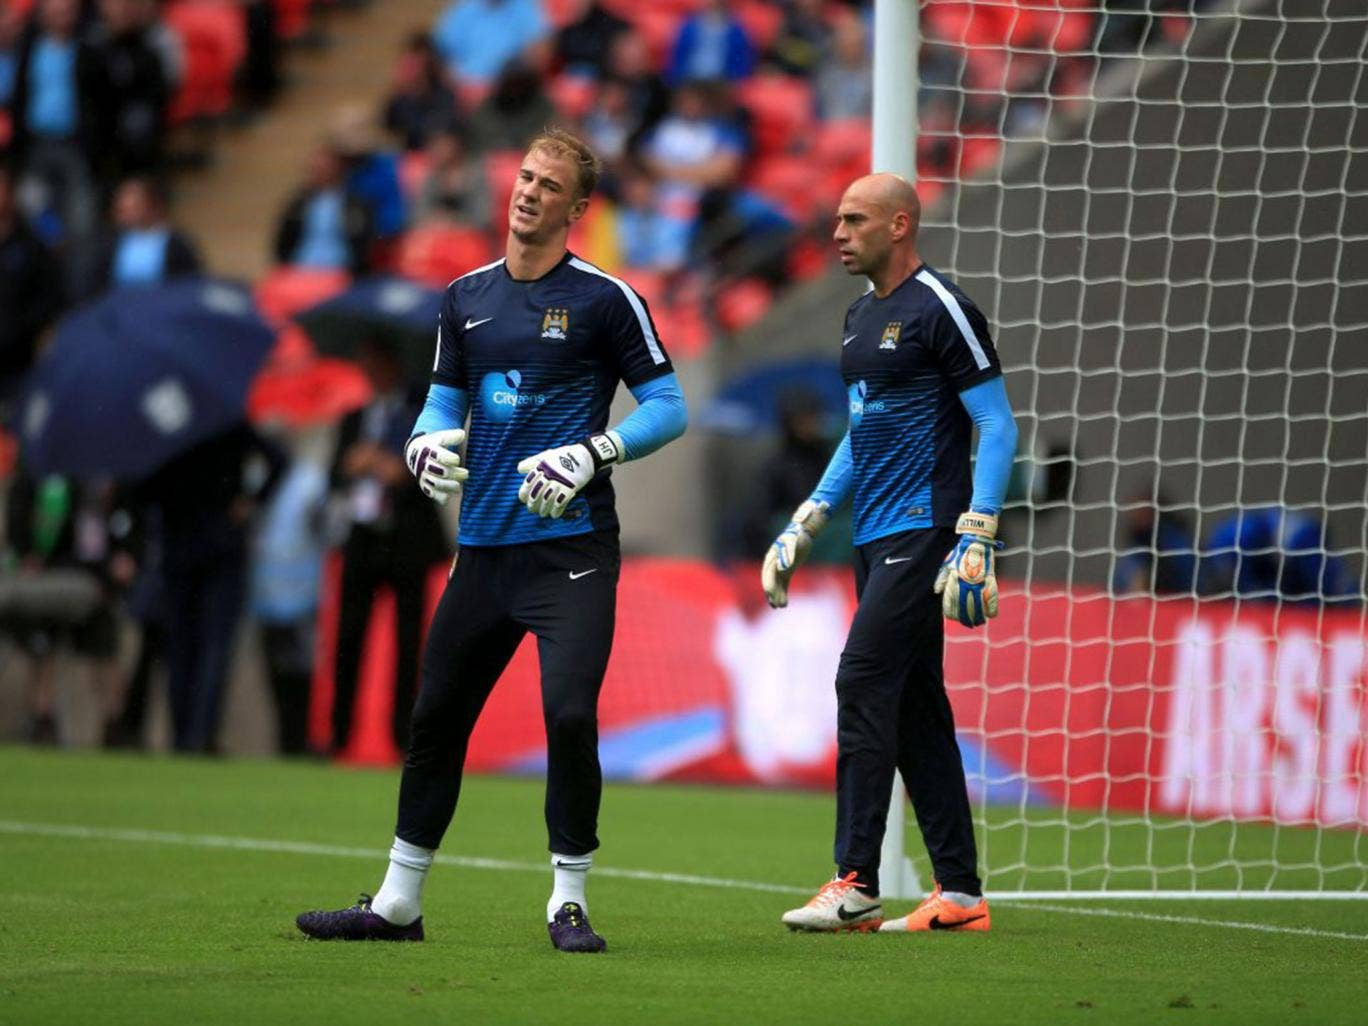 Joe Hart warms up alongside Willy Caballero before the Community Shield at Wembley